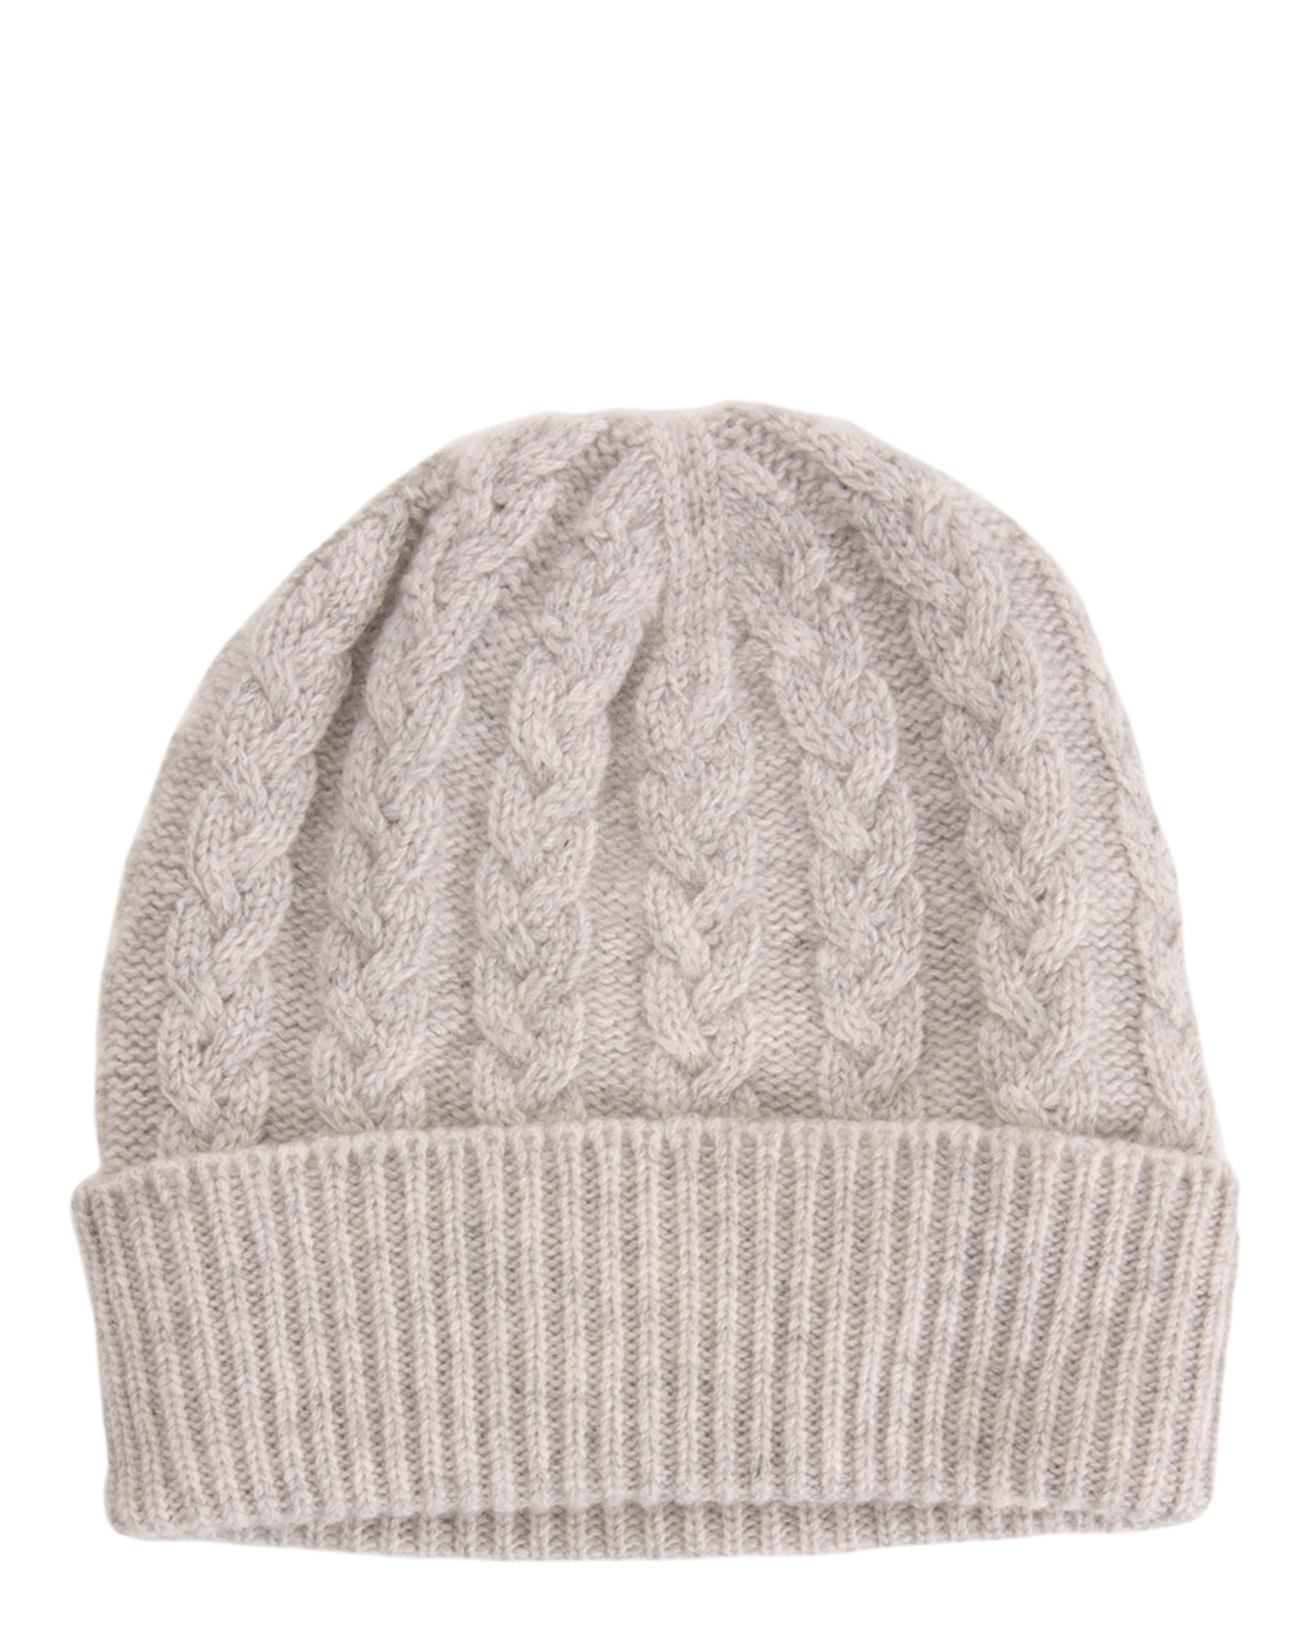 7528-statement cable hat-dove grey.jpg